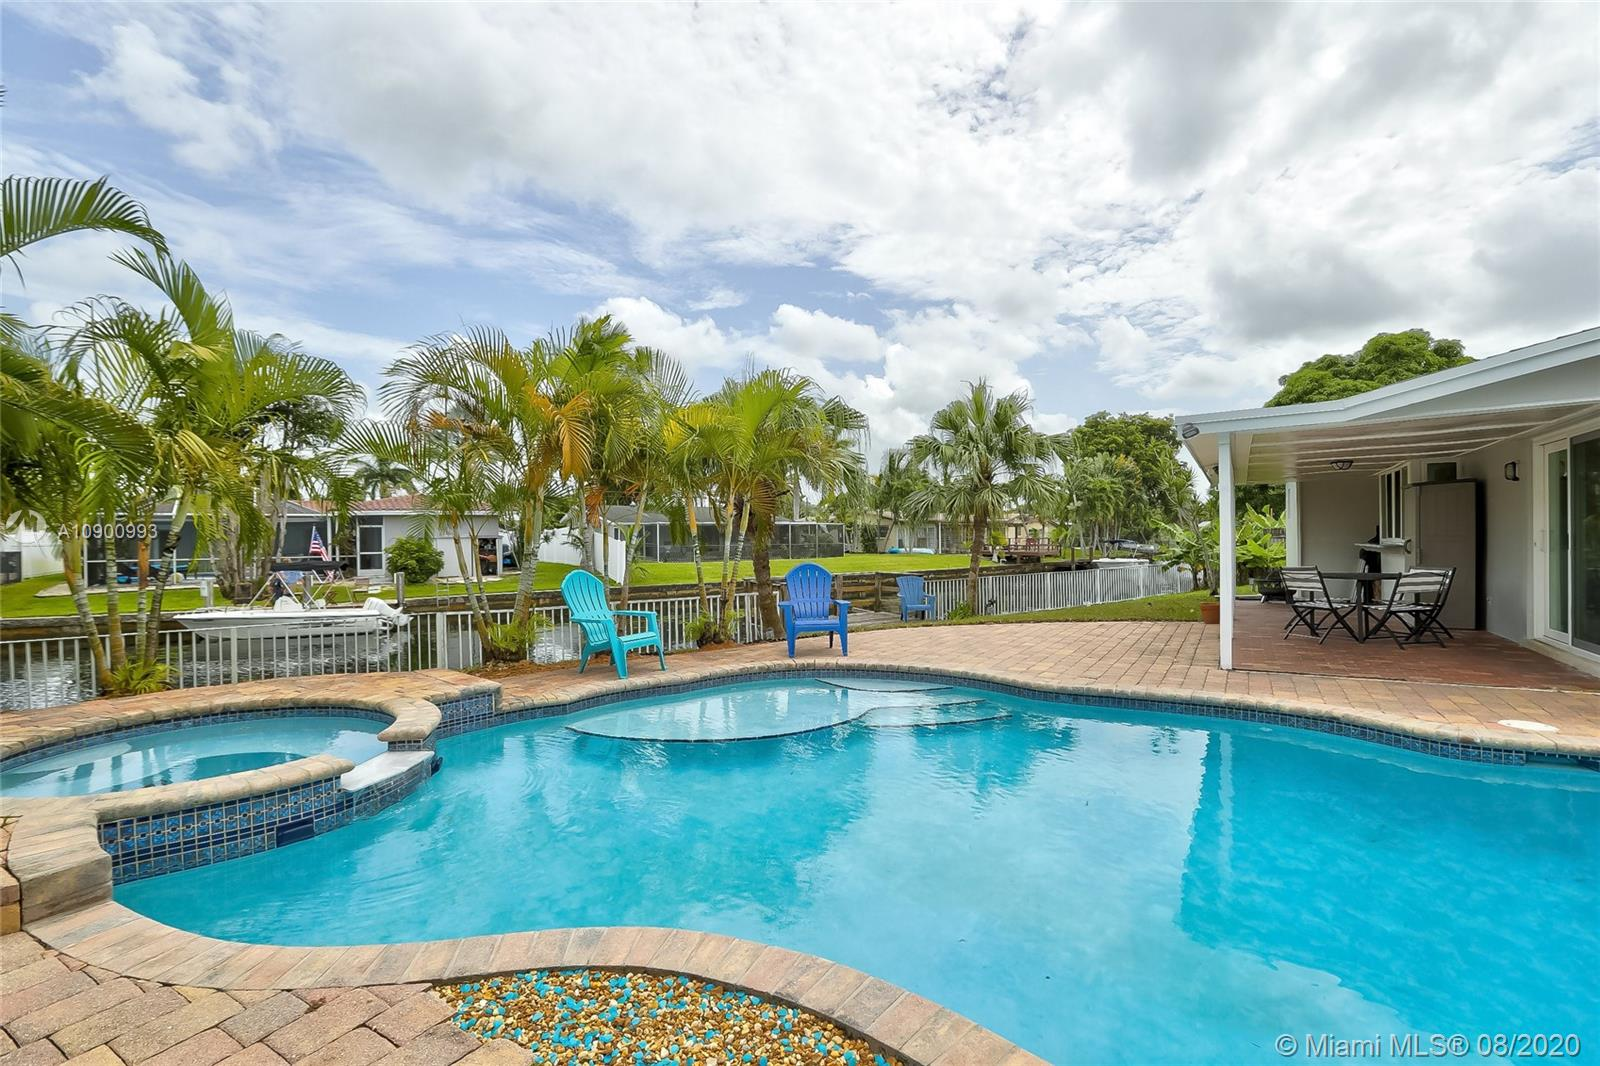 The perfect Florida Bungalow awaits!  This home offers 100 feet of water frontage with Ocean Access.  Brand new, complete impact windows with transferable warranty, fresh paint inside and out, all new pool equipment, new appliance package, updated bathrooms, as well as a newer A/C.  Expansive outdoor space with ambient lighting in addition to the free-form pool and hot tub make this the perfect Oasis for boaters, snowbirds, or investors looking for a vacation rental.  NO HOA so you can store your boat or RV on premises.  Conveniently located with easy access to I-95, beaches and shopping.